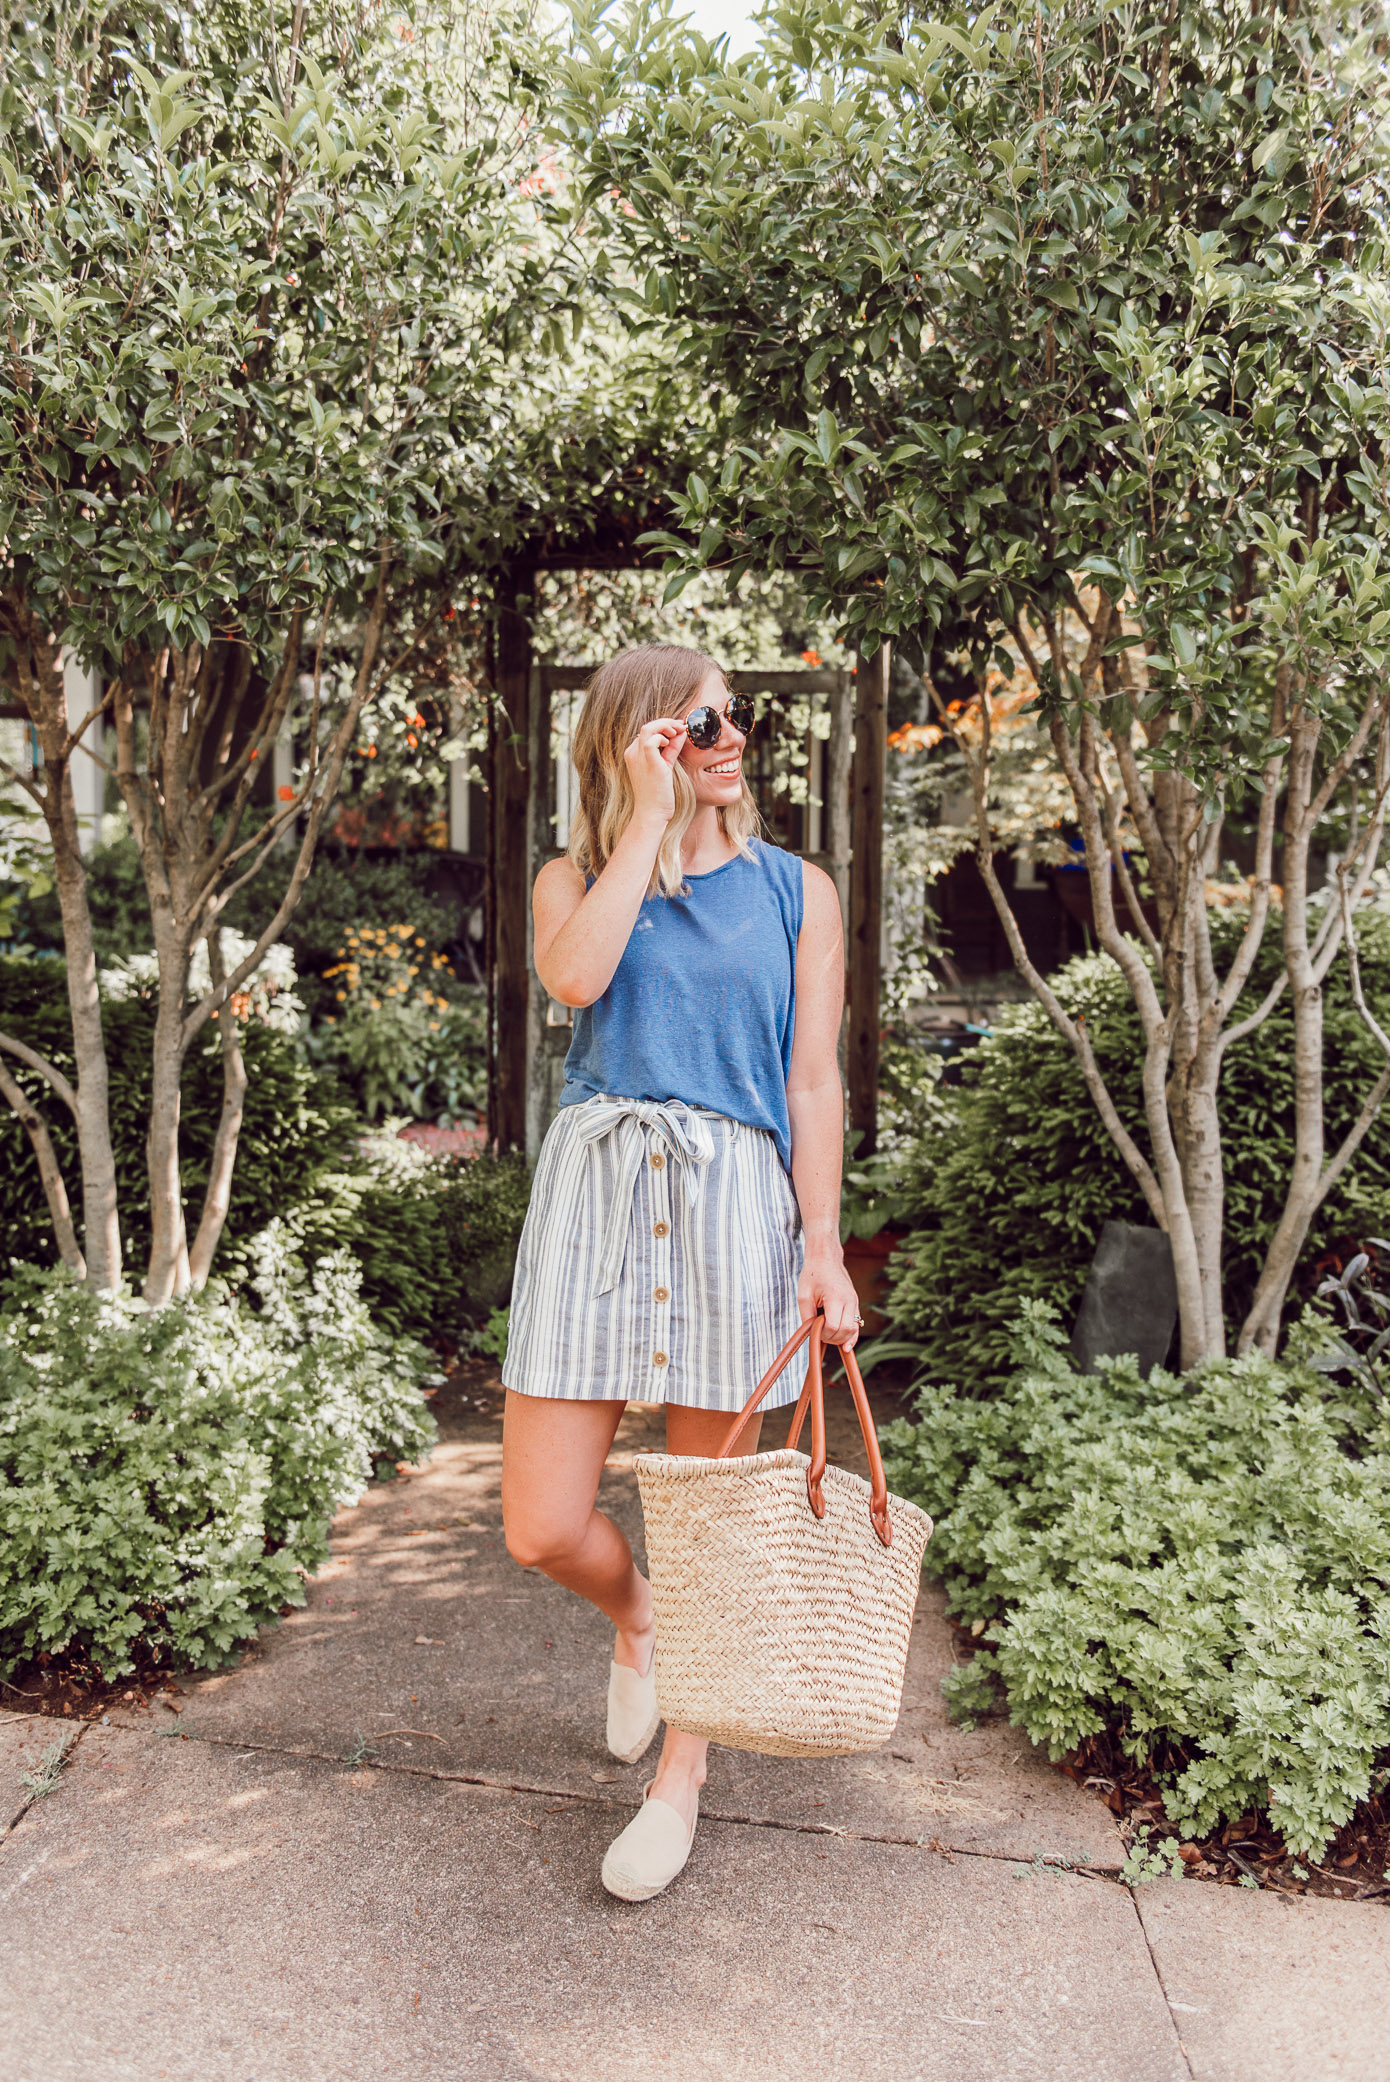 Summer linen clothing pieces that are lightweight and easy to throw on | linen tank, linen mini skirt, straw tote, neutral espadrilles | Louella Reese